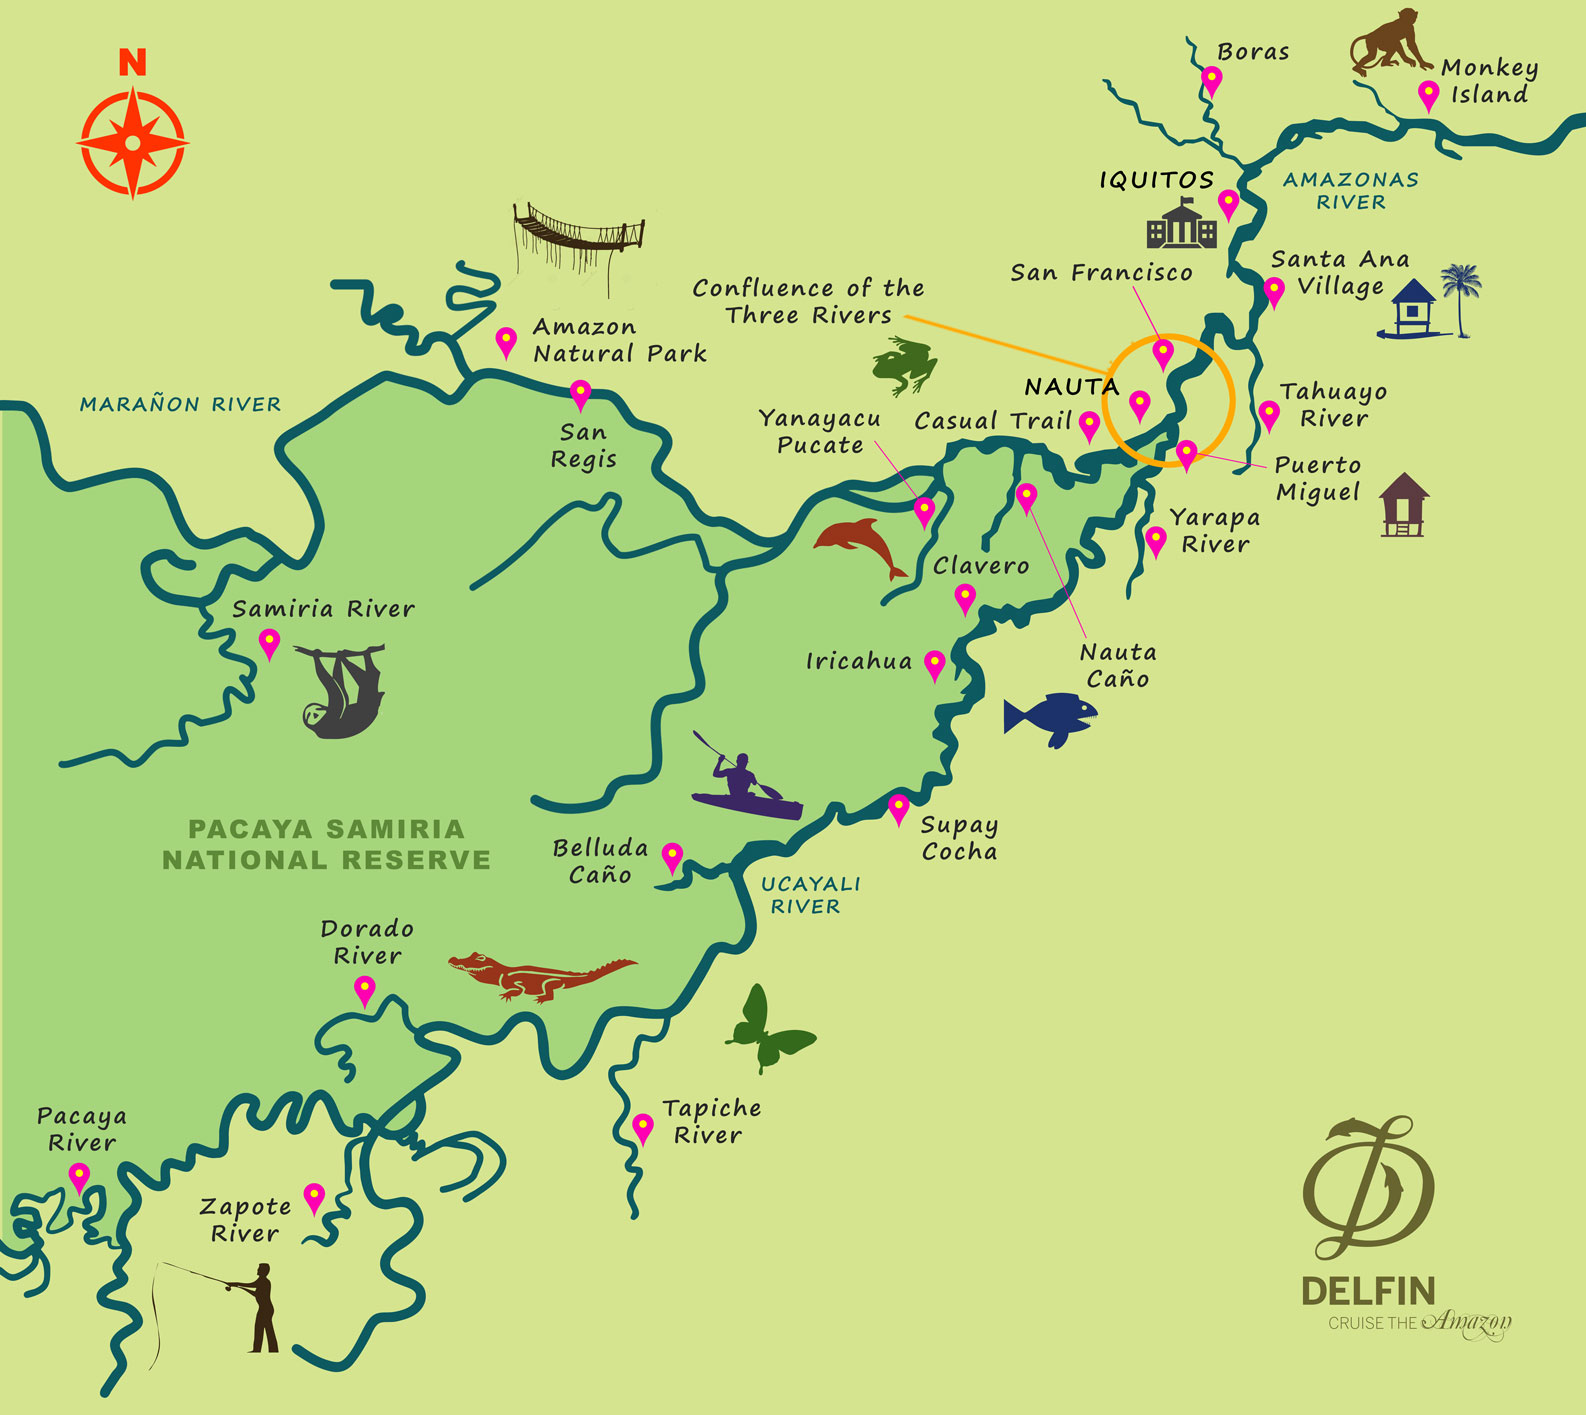 Map for Amazon River Cruise (4 days) Delfin II